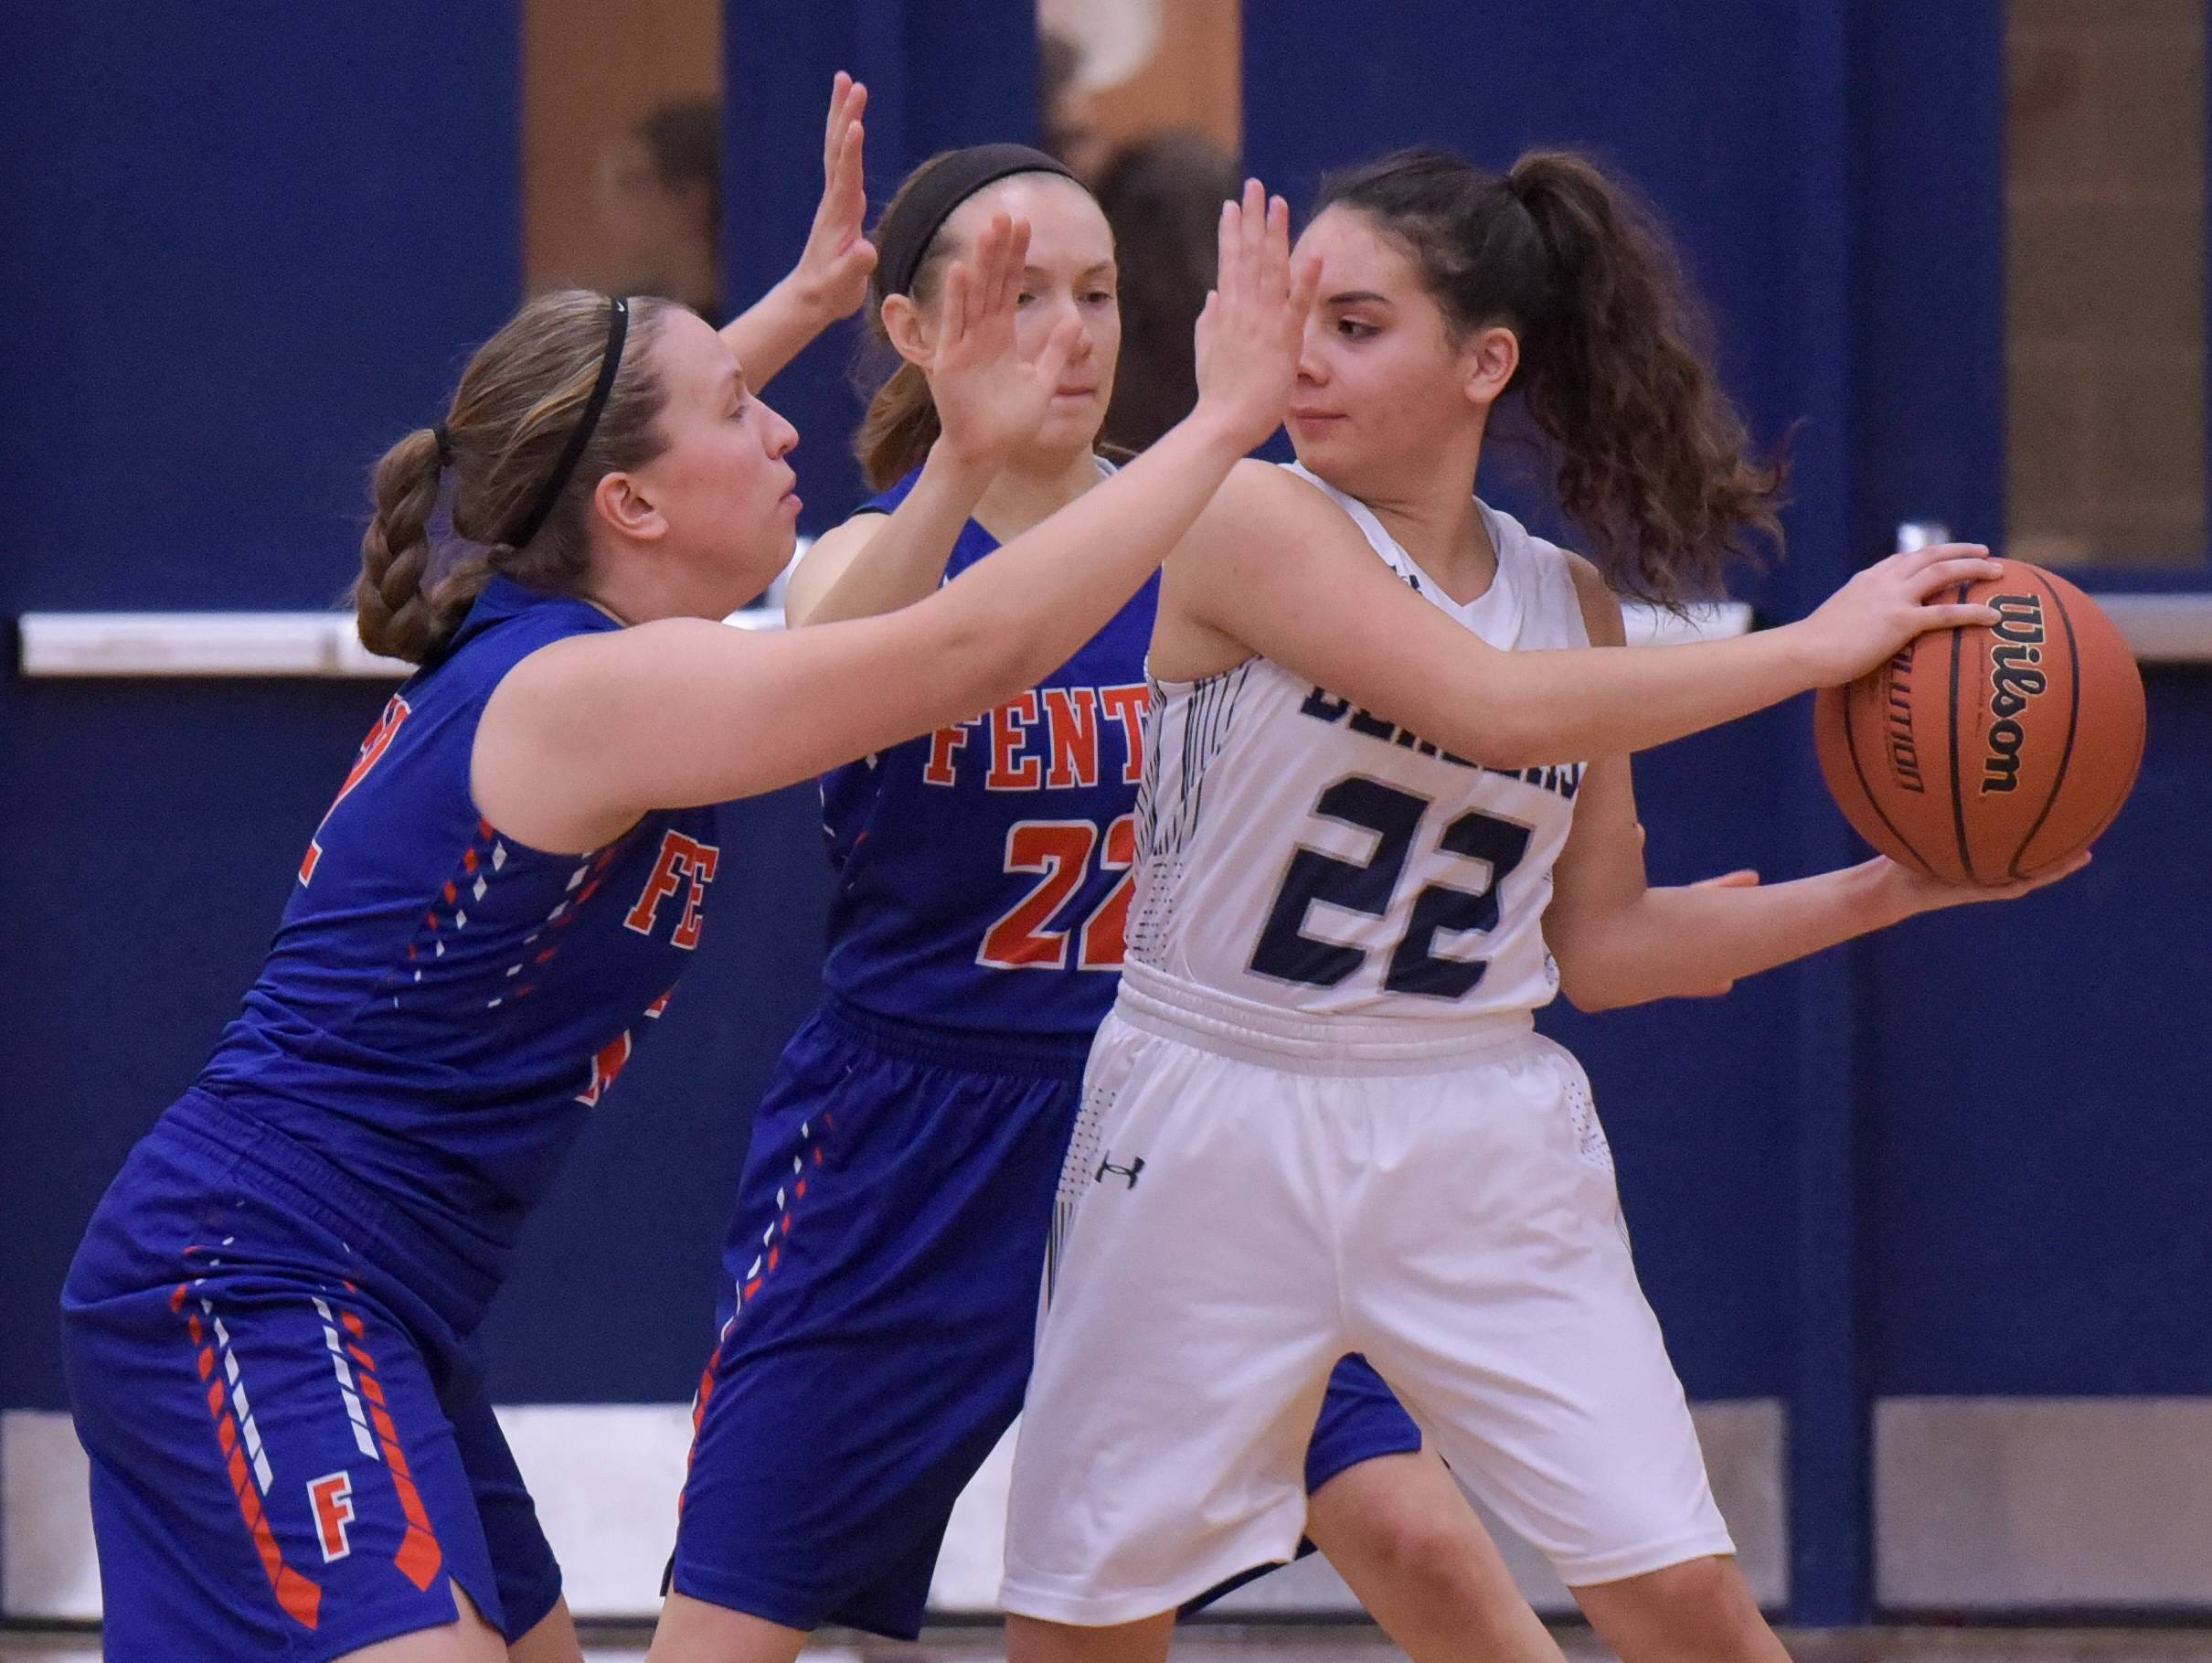 Addison Trail's Angelina Carreras (22) is double teamed by Fenton's Jamie Minard (12) and Julia Kaspari (22) during varsity girls basketball on November 21, 2017.